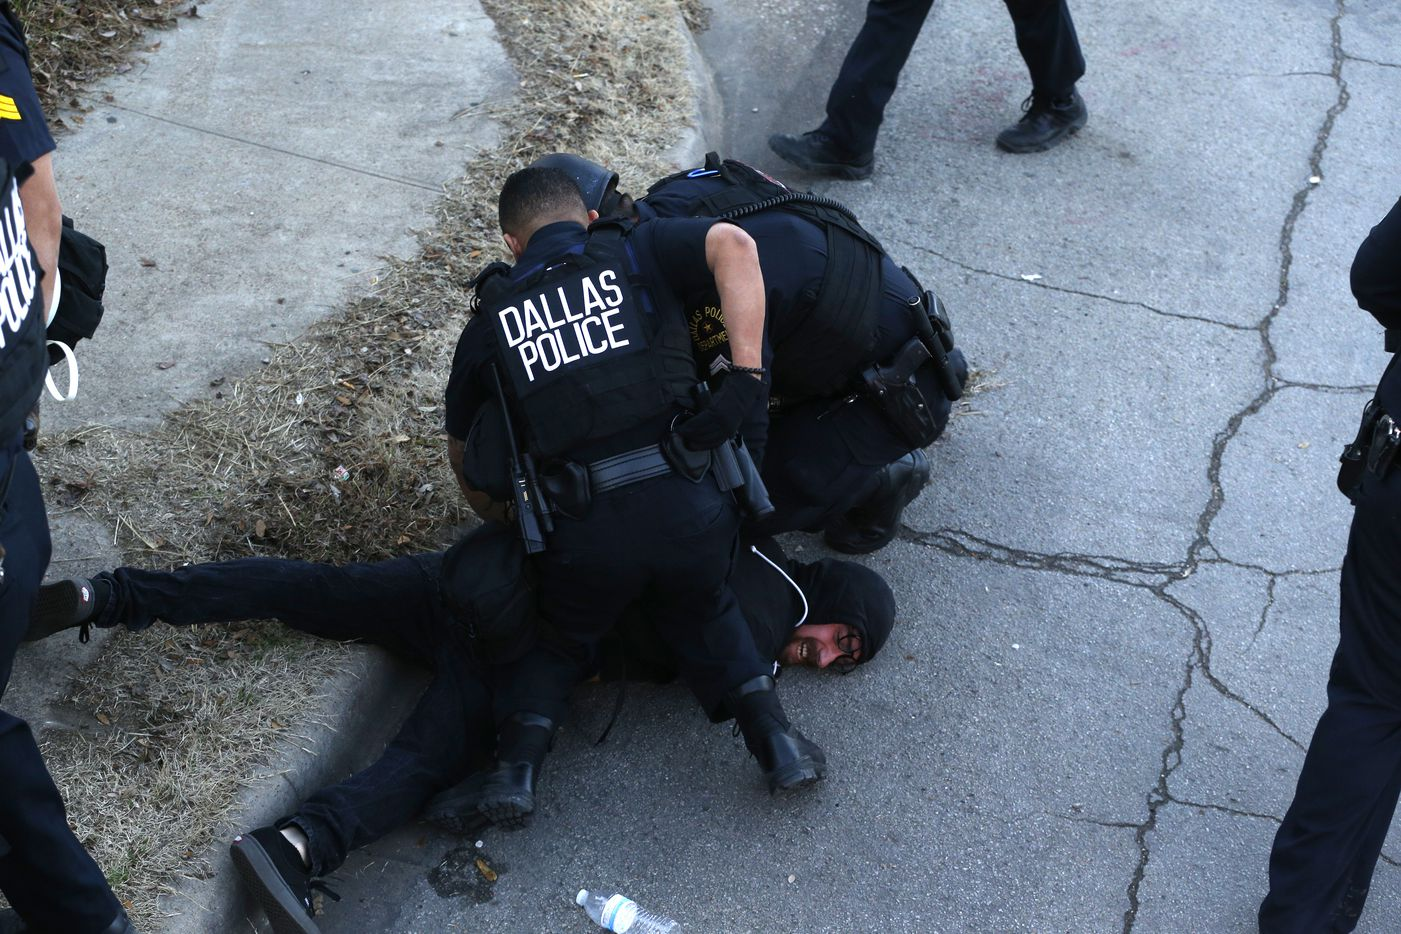 A protester is arrested during the J20 Dallas Anti Trump March & General Strike on Bishop st. in Dallas on January 20, 2017.